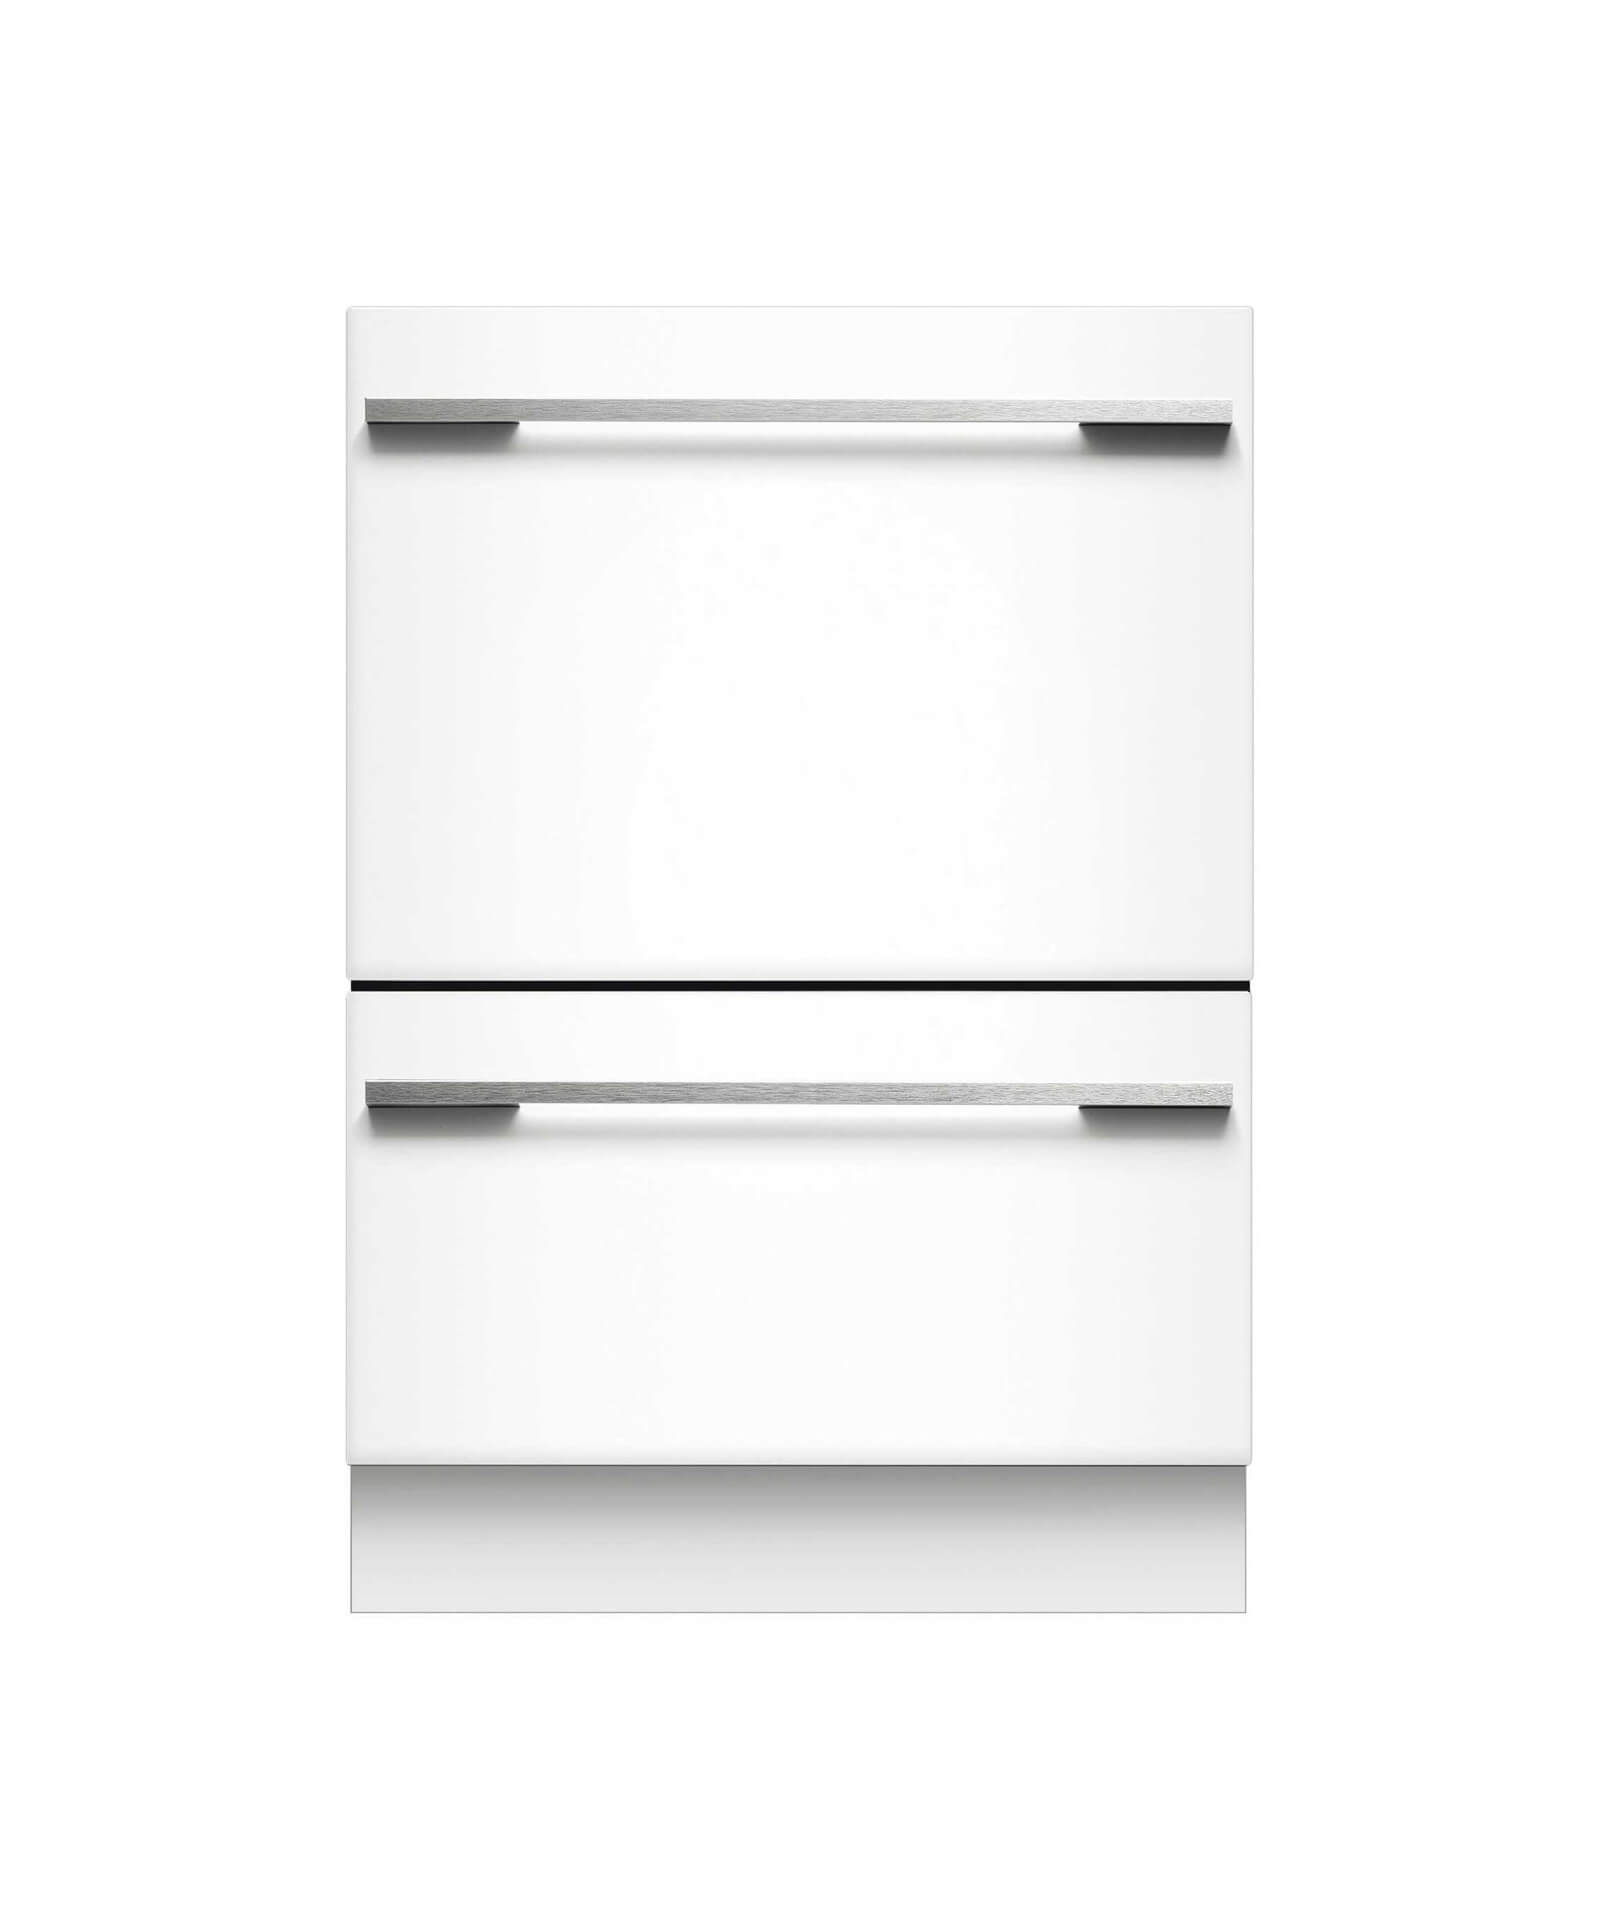 Fisher & Paykel Panel Ready DishDrawer™ Tall Double Dishwasher DD24DHTI7